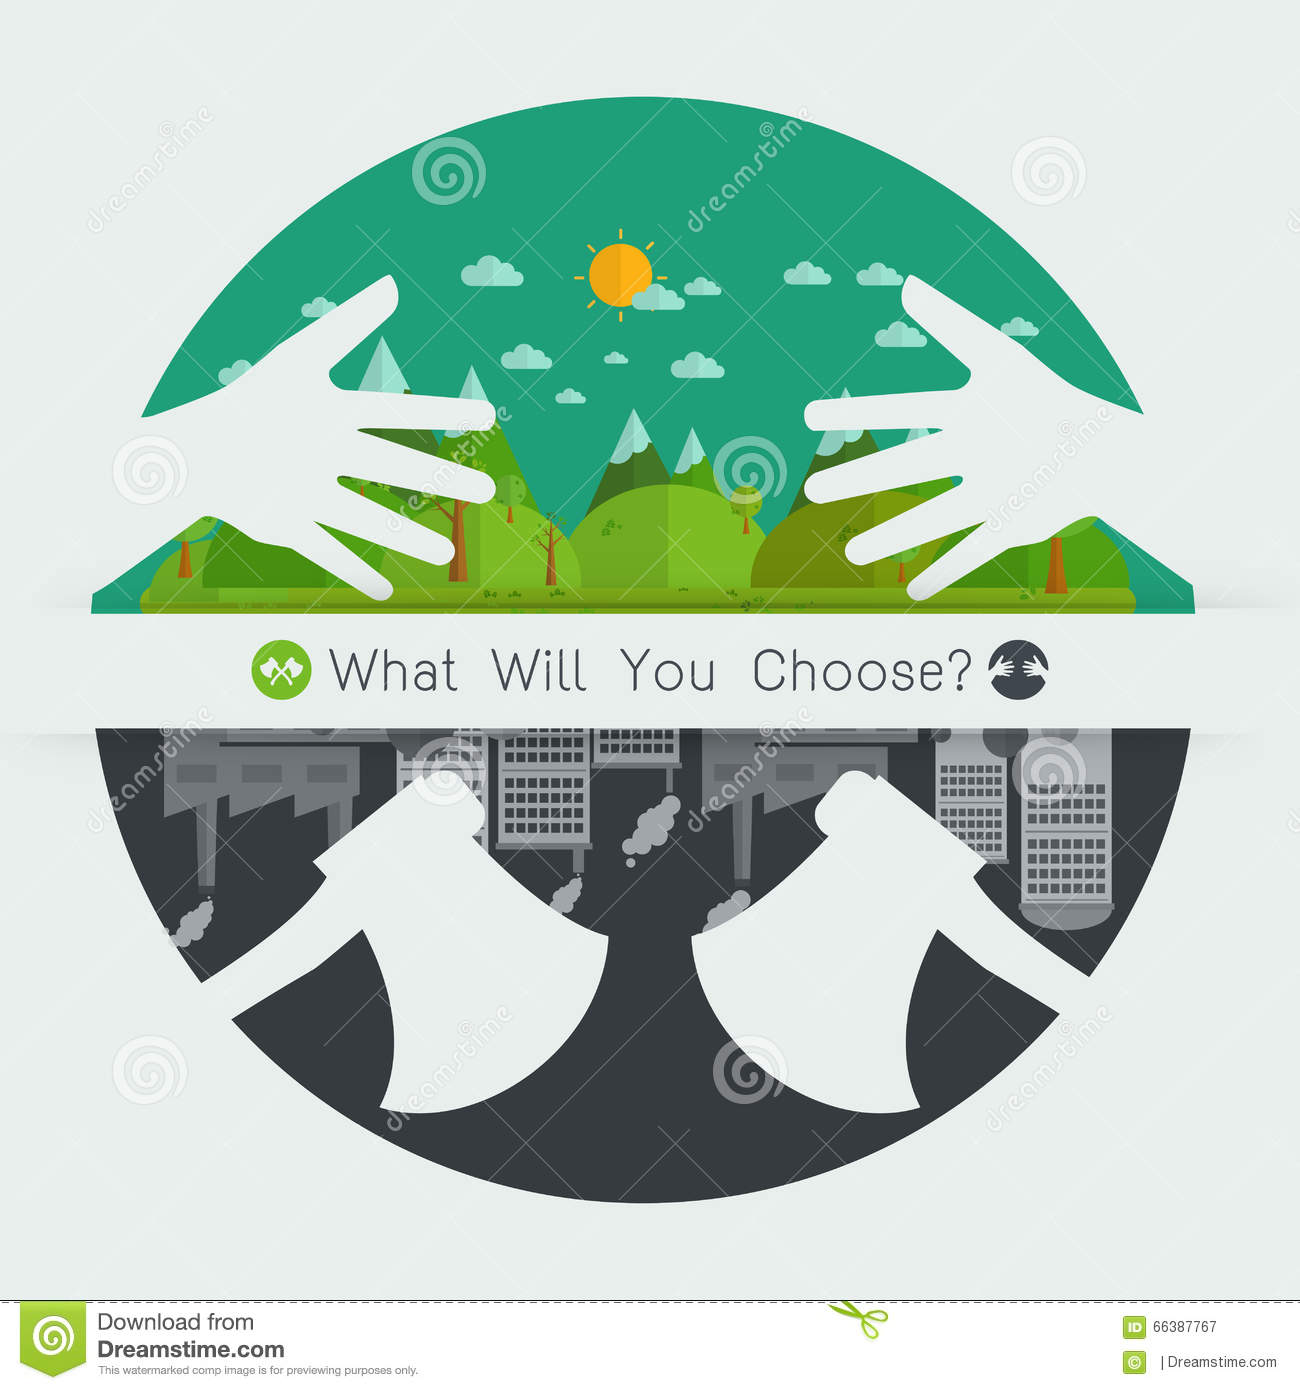 Environmental Concept Earthfriendly Landscapes: What Will You Choose Concept Eco Friendly Or Destroy